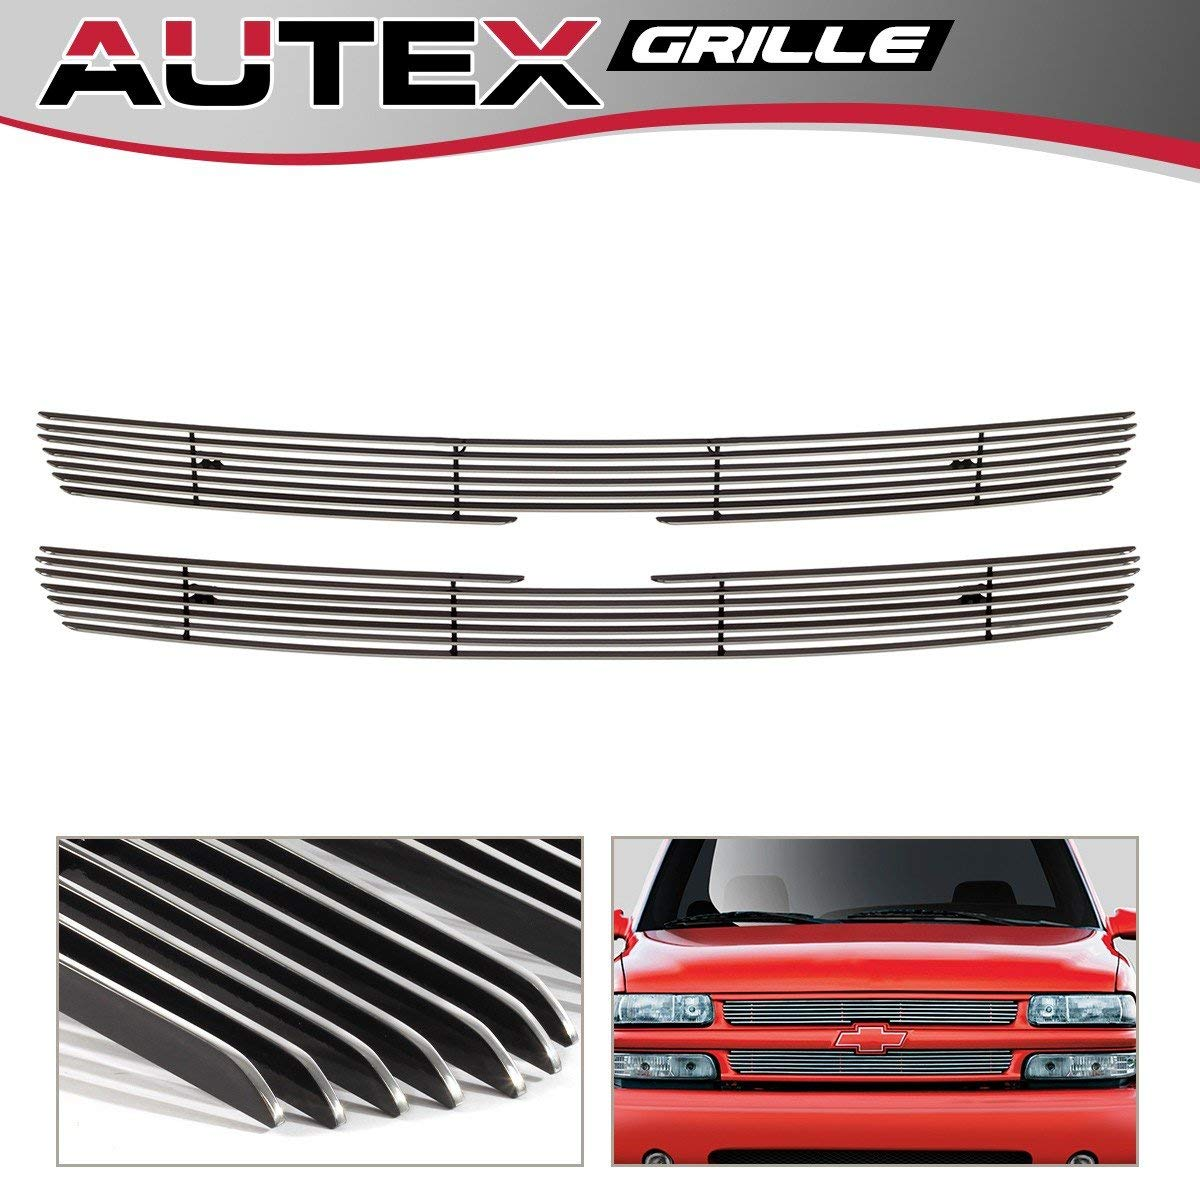 AUTEX C65701A Aluminum Polished Chrome Billet Grille Insert Compatible With 1999-2002 Chevy Silverado 1500/1500HD, 1999-2000 Chevy Silverado 2500/2500HD/3500, 2000-2006 Chevy Tahoe/Suburban Grill